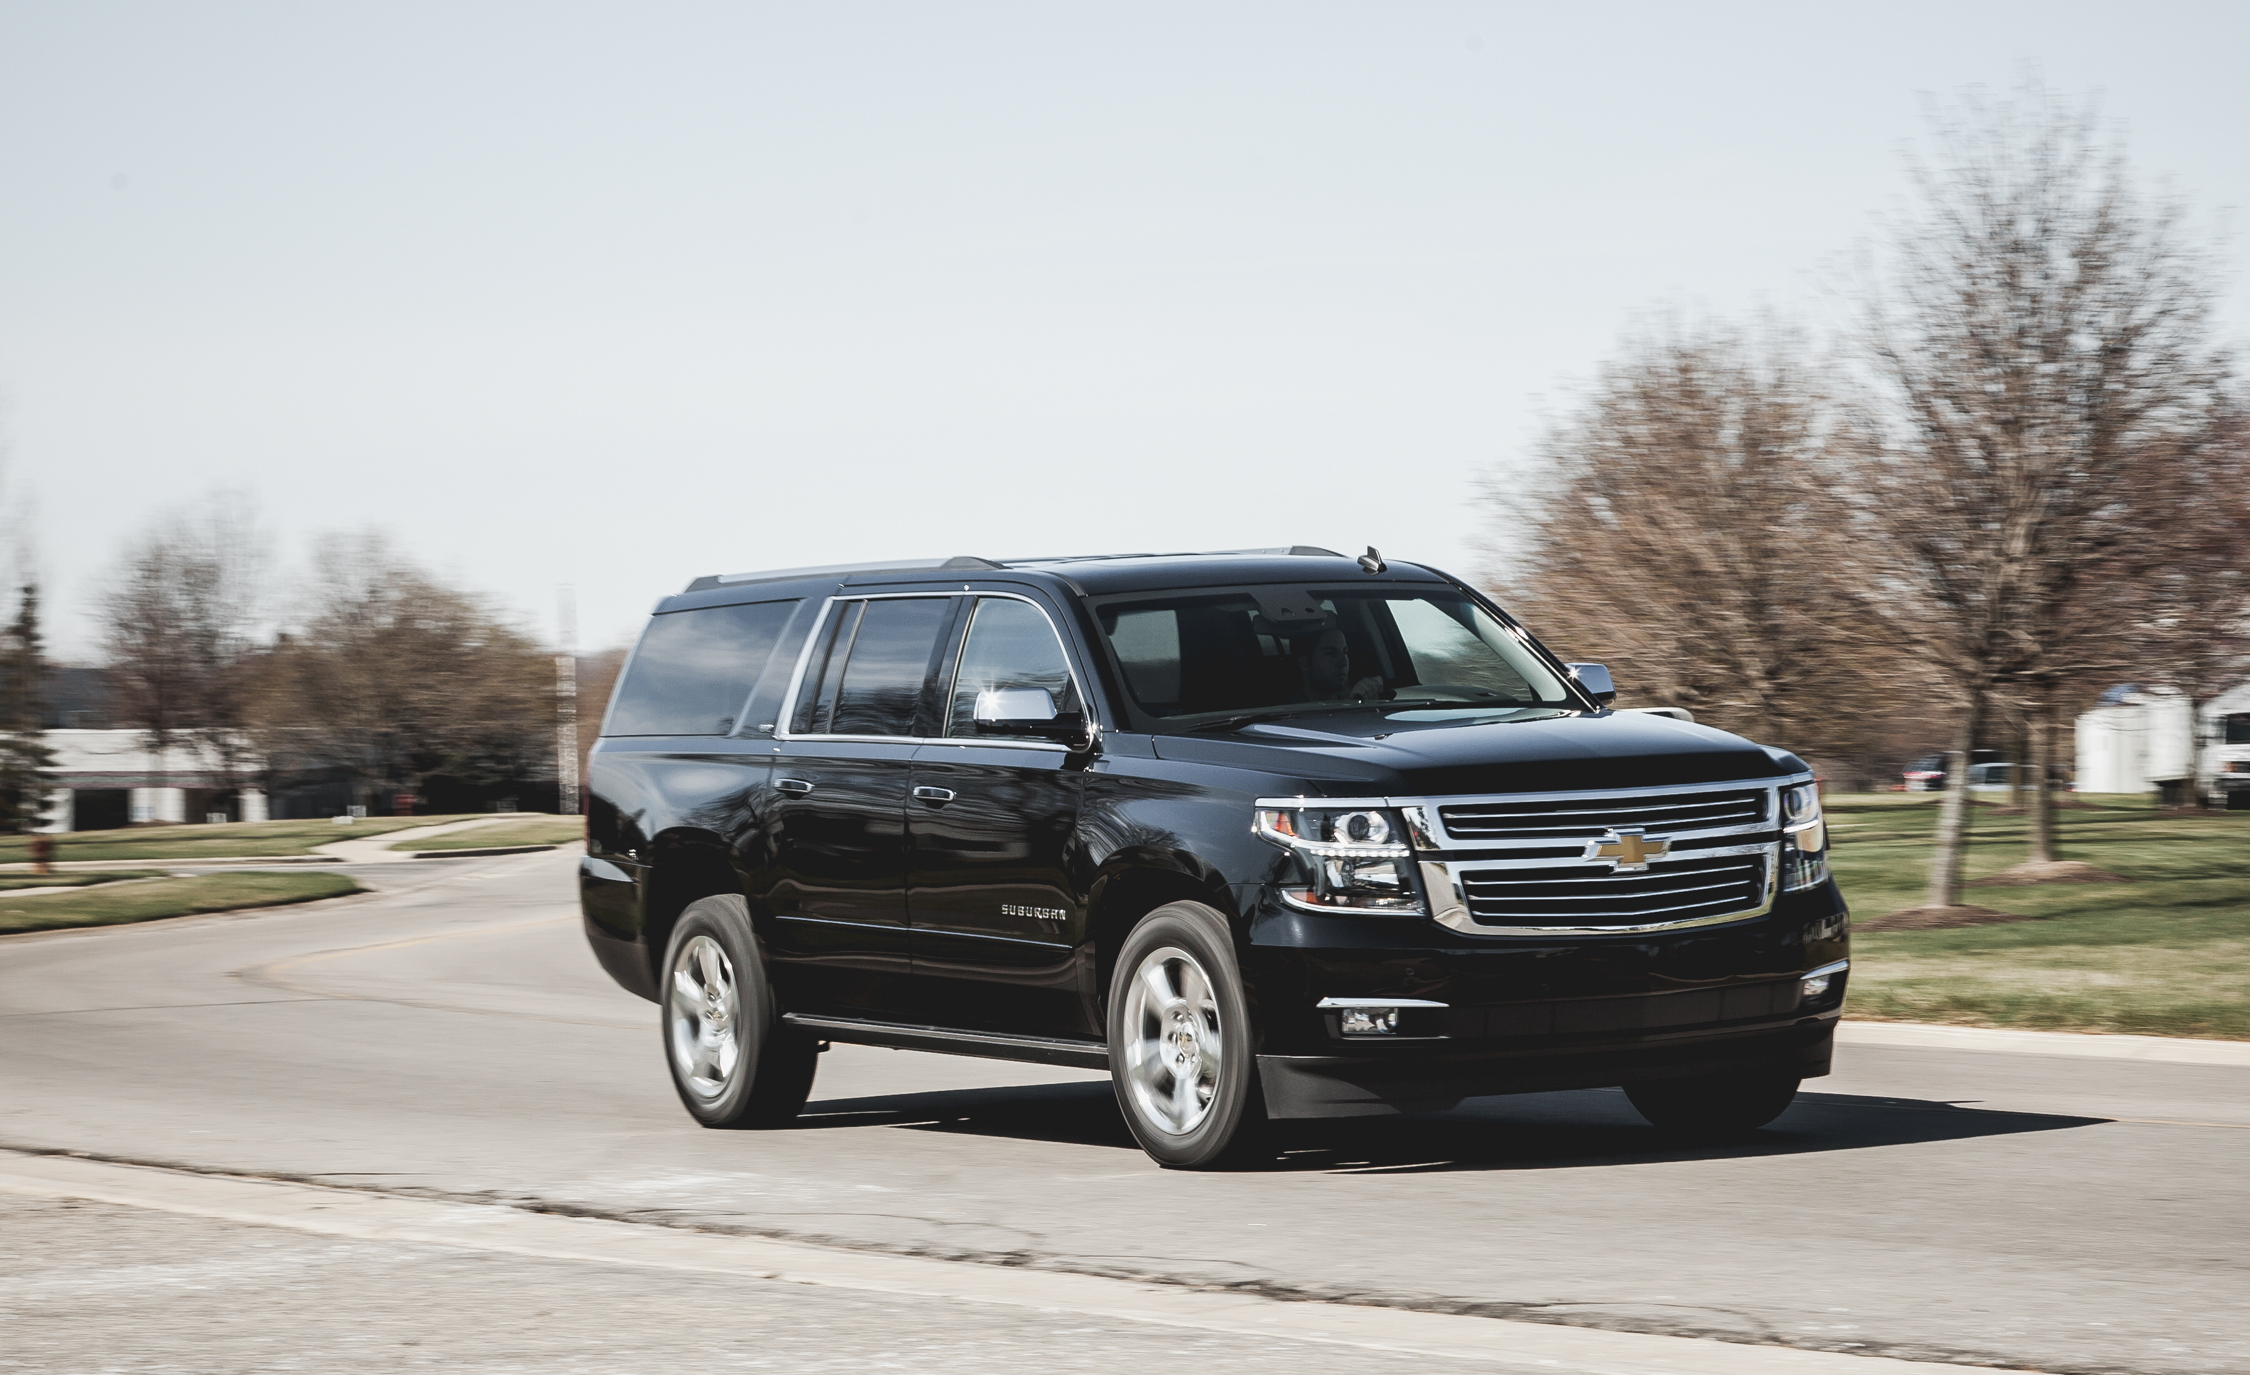 2015 Chevrolet Suburban LTZ (Photo 1 of 33)